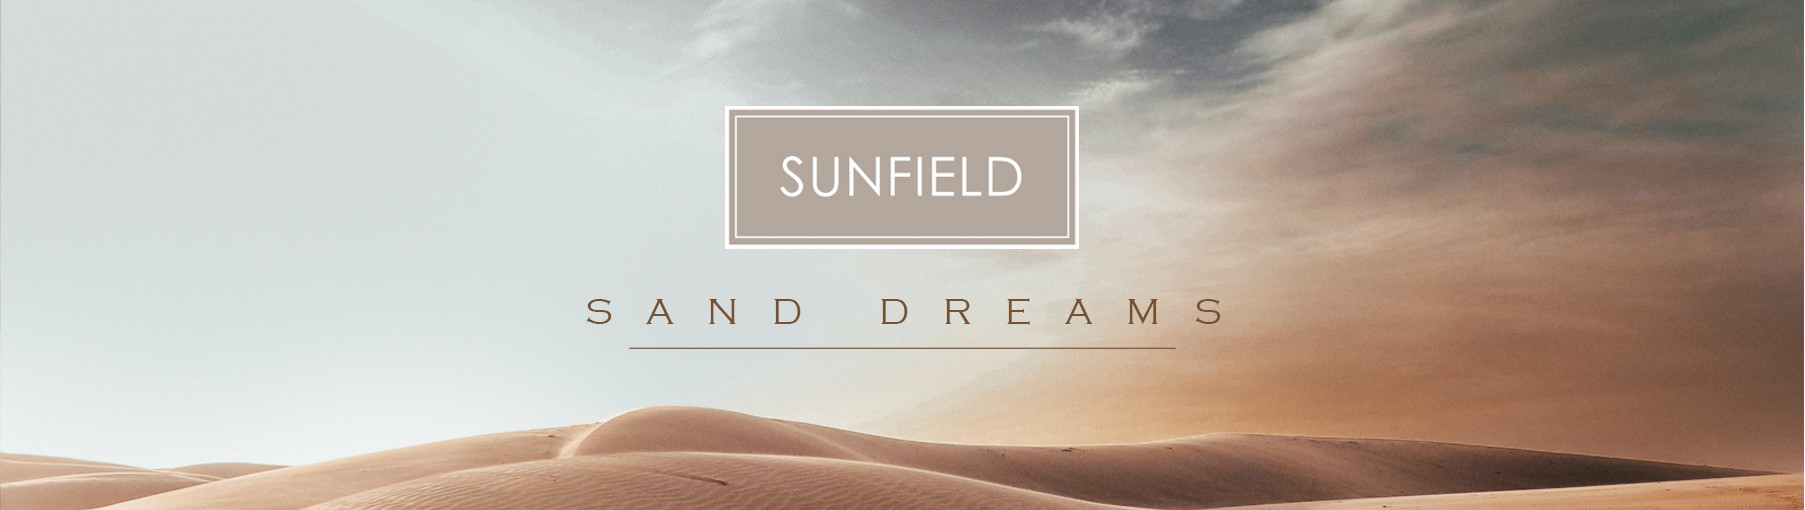 sand_dreams_sunfield_banner.png